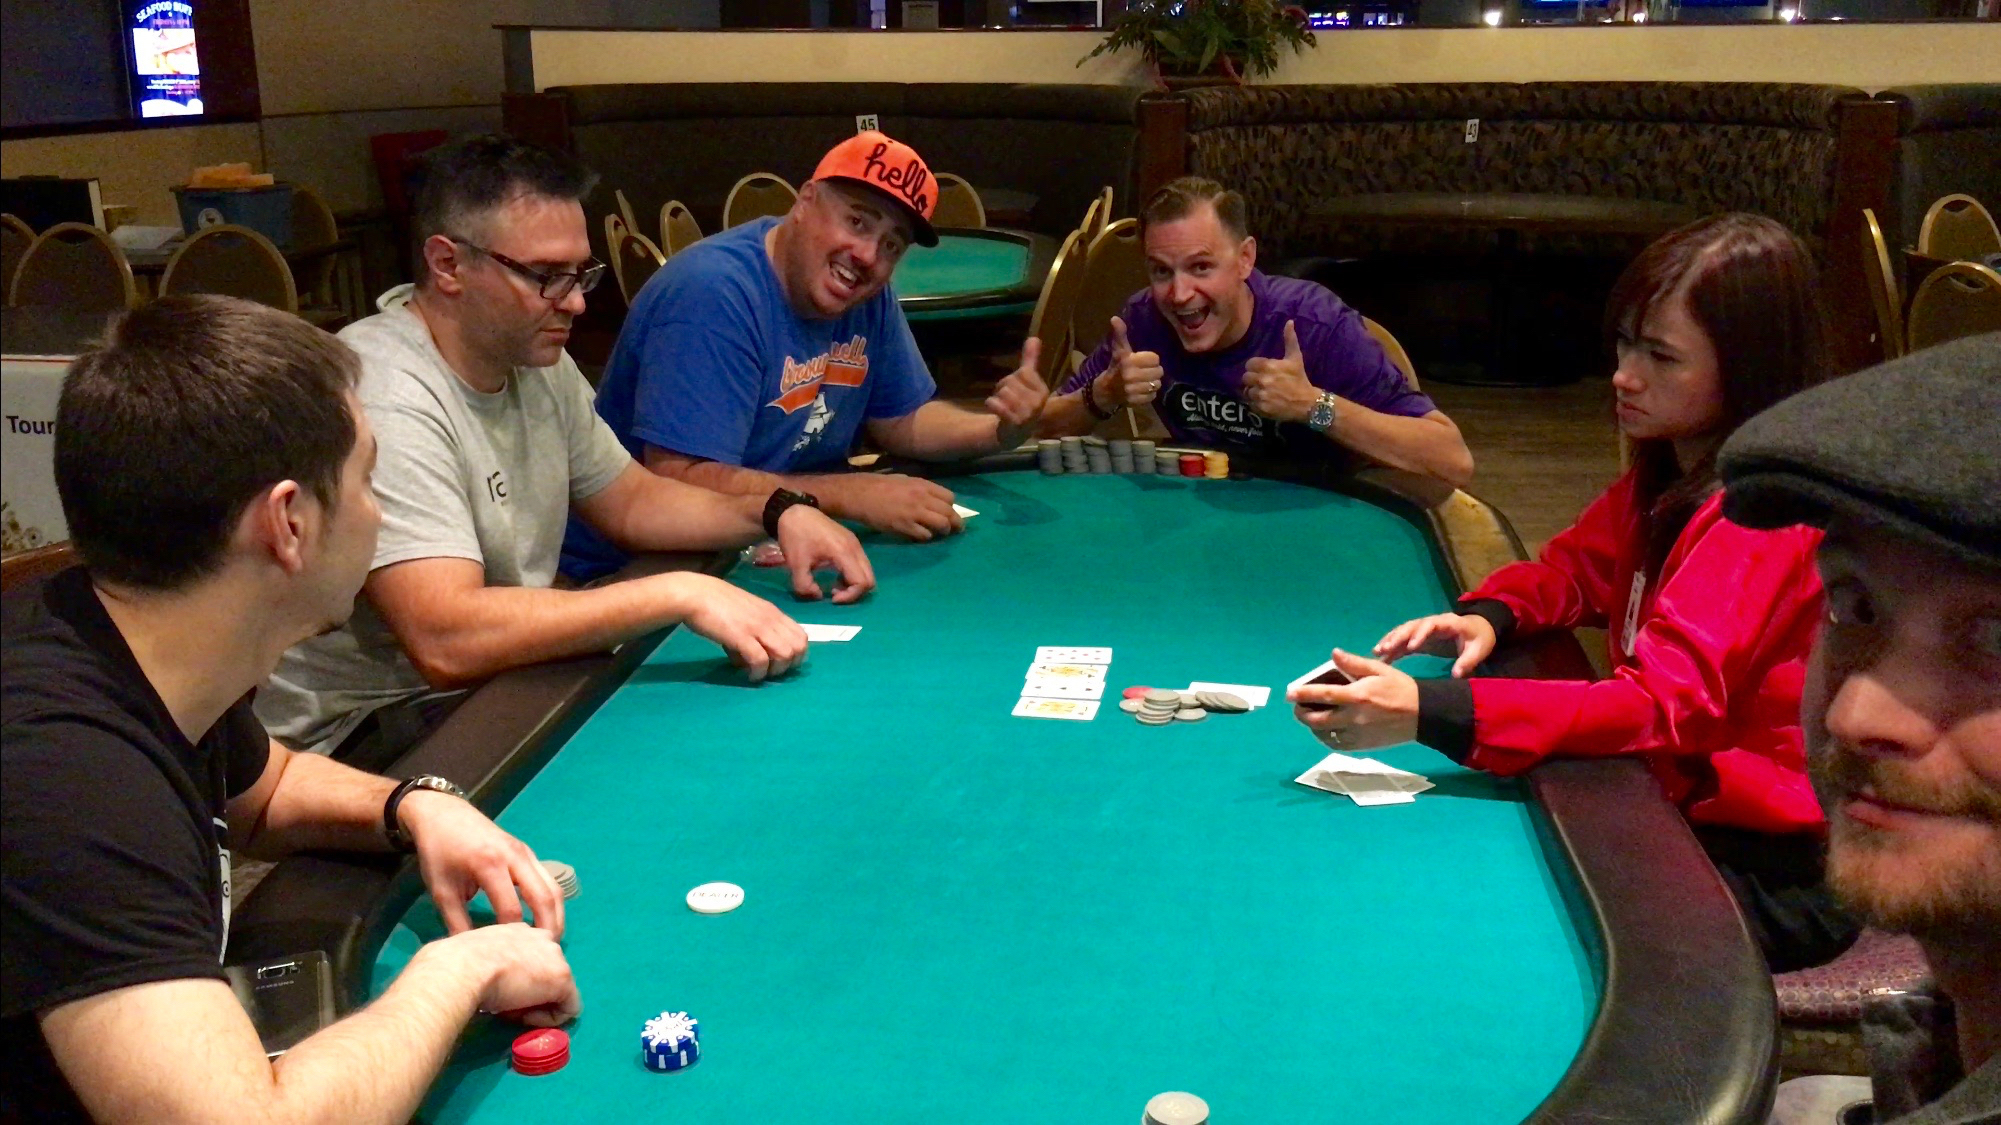 Me at the final table with STAXXX!